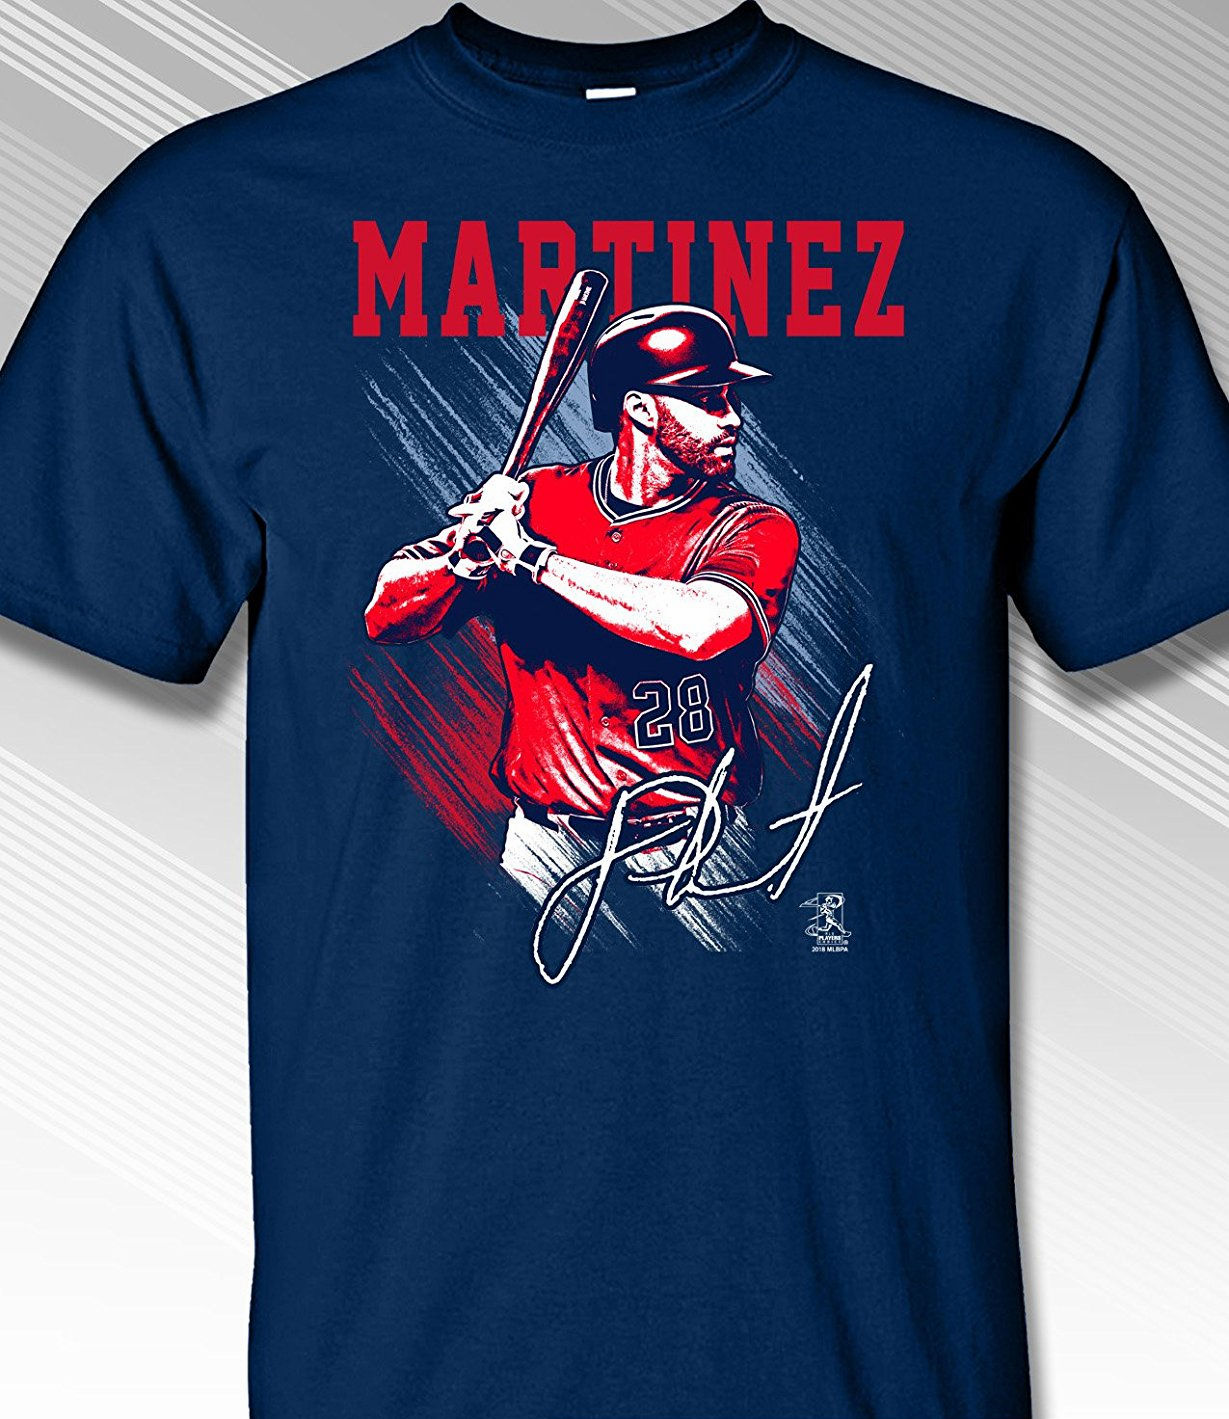 J.D. Martinez Boston Pastels T-Shirt<br>Short or Long Sleeve<br>Youth Med to Adult 4X